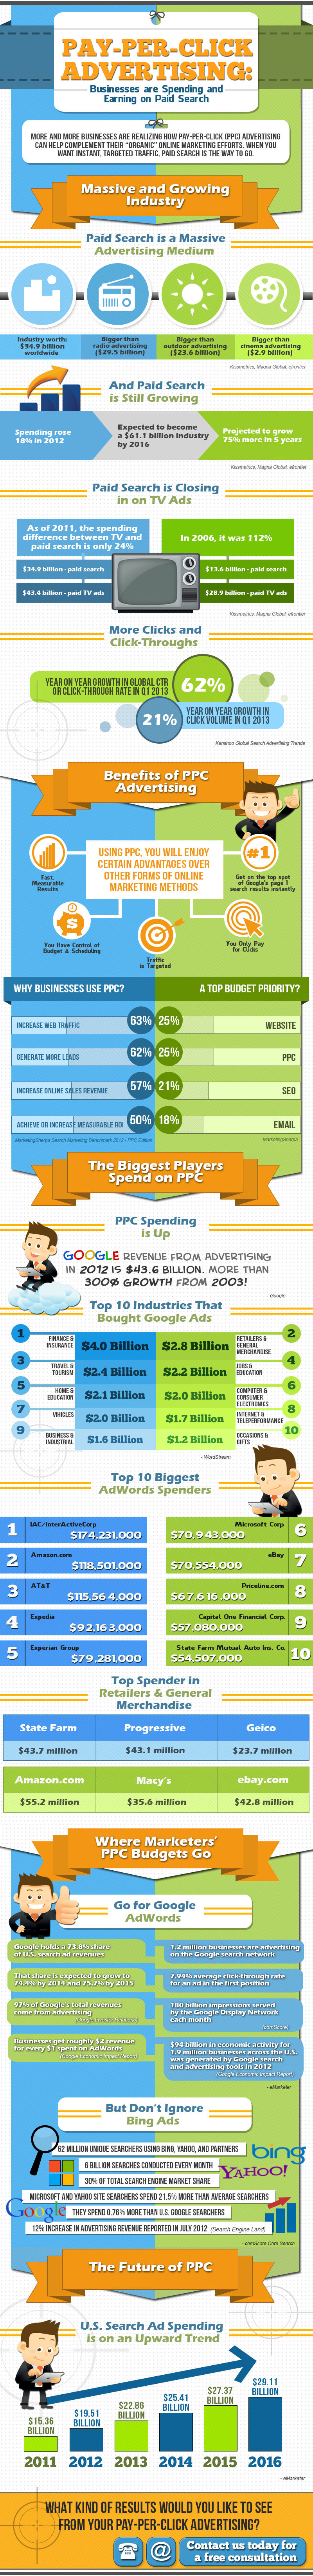 Pay Per Click Infographic